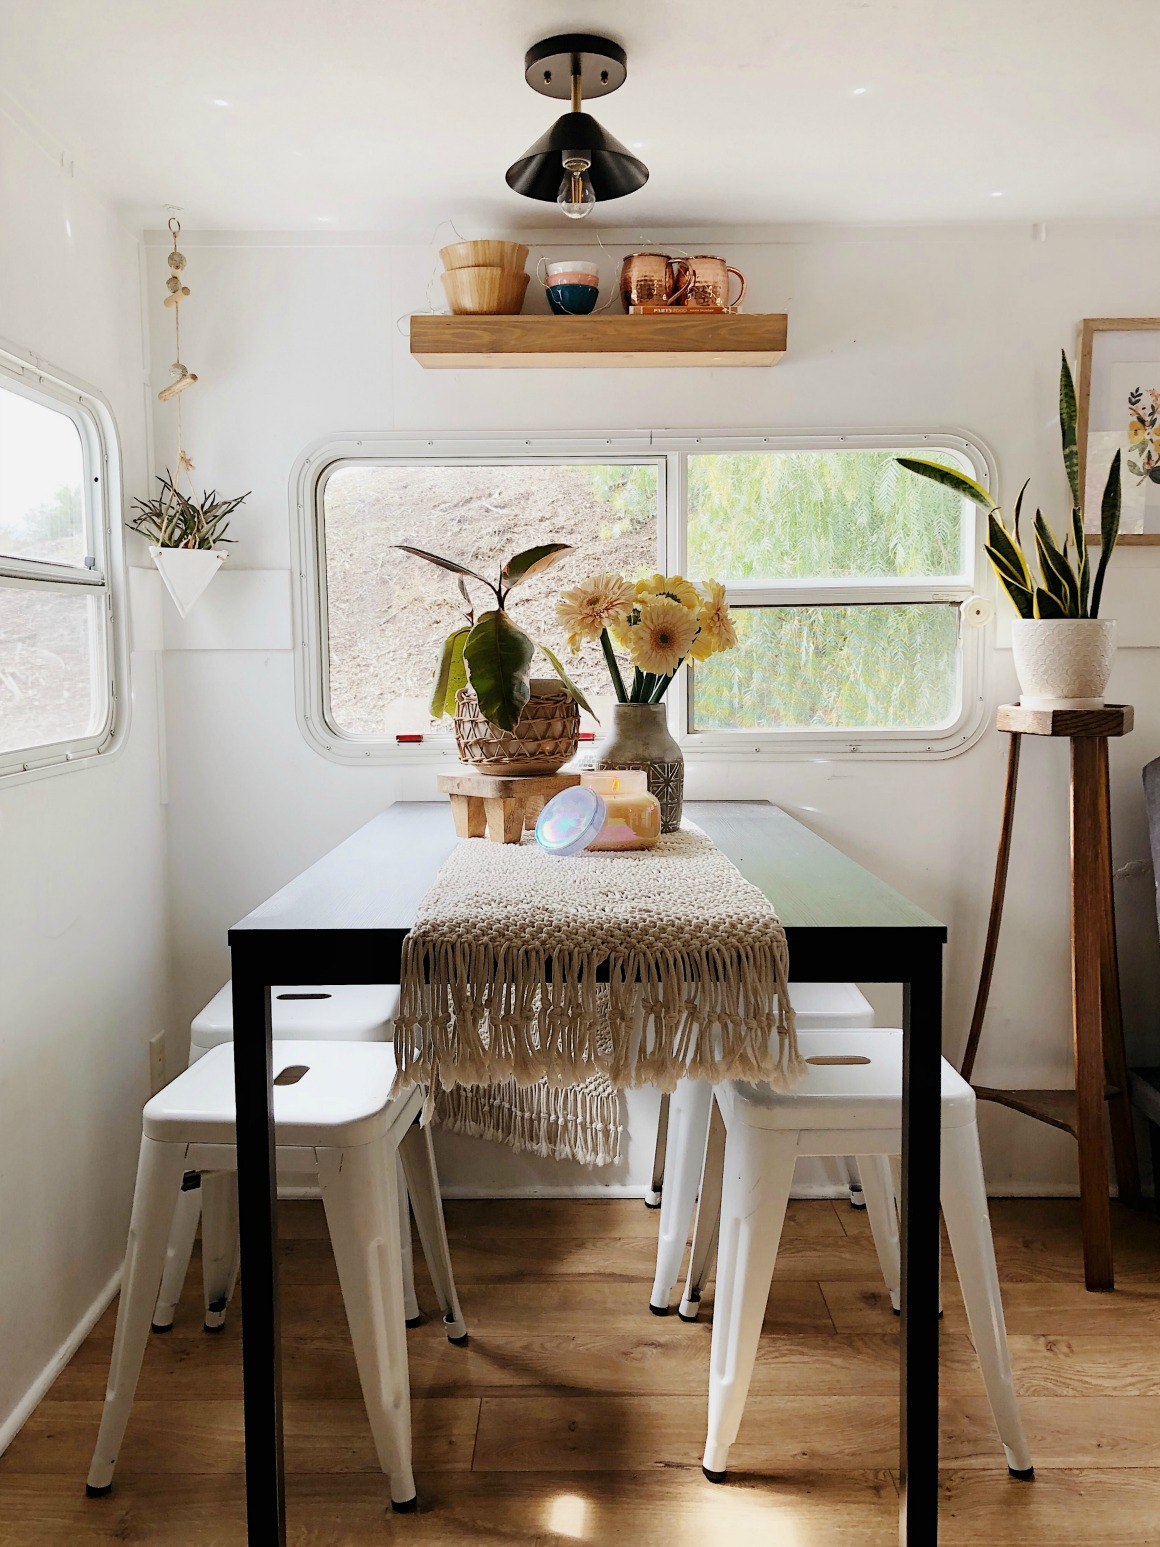 Small Space Living Series 180 Square Feet With Arrows And